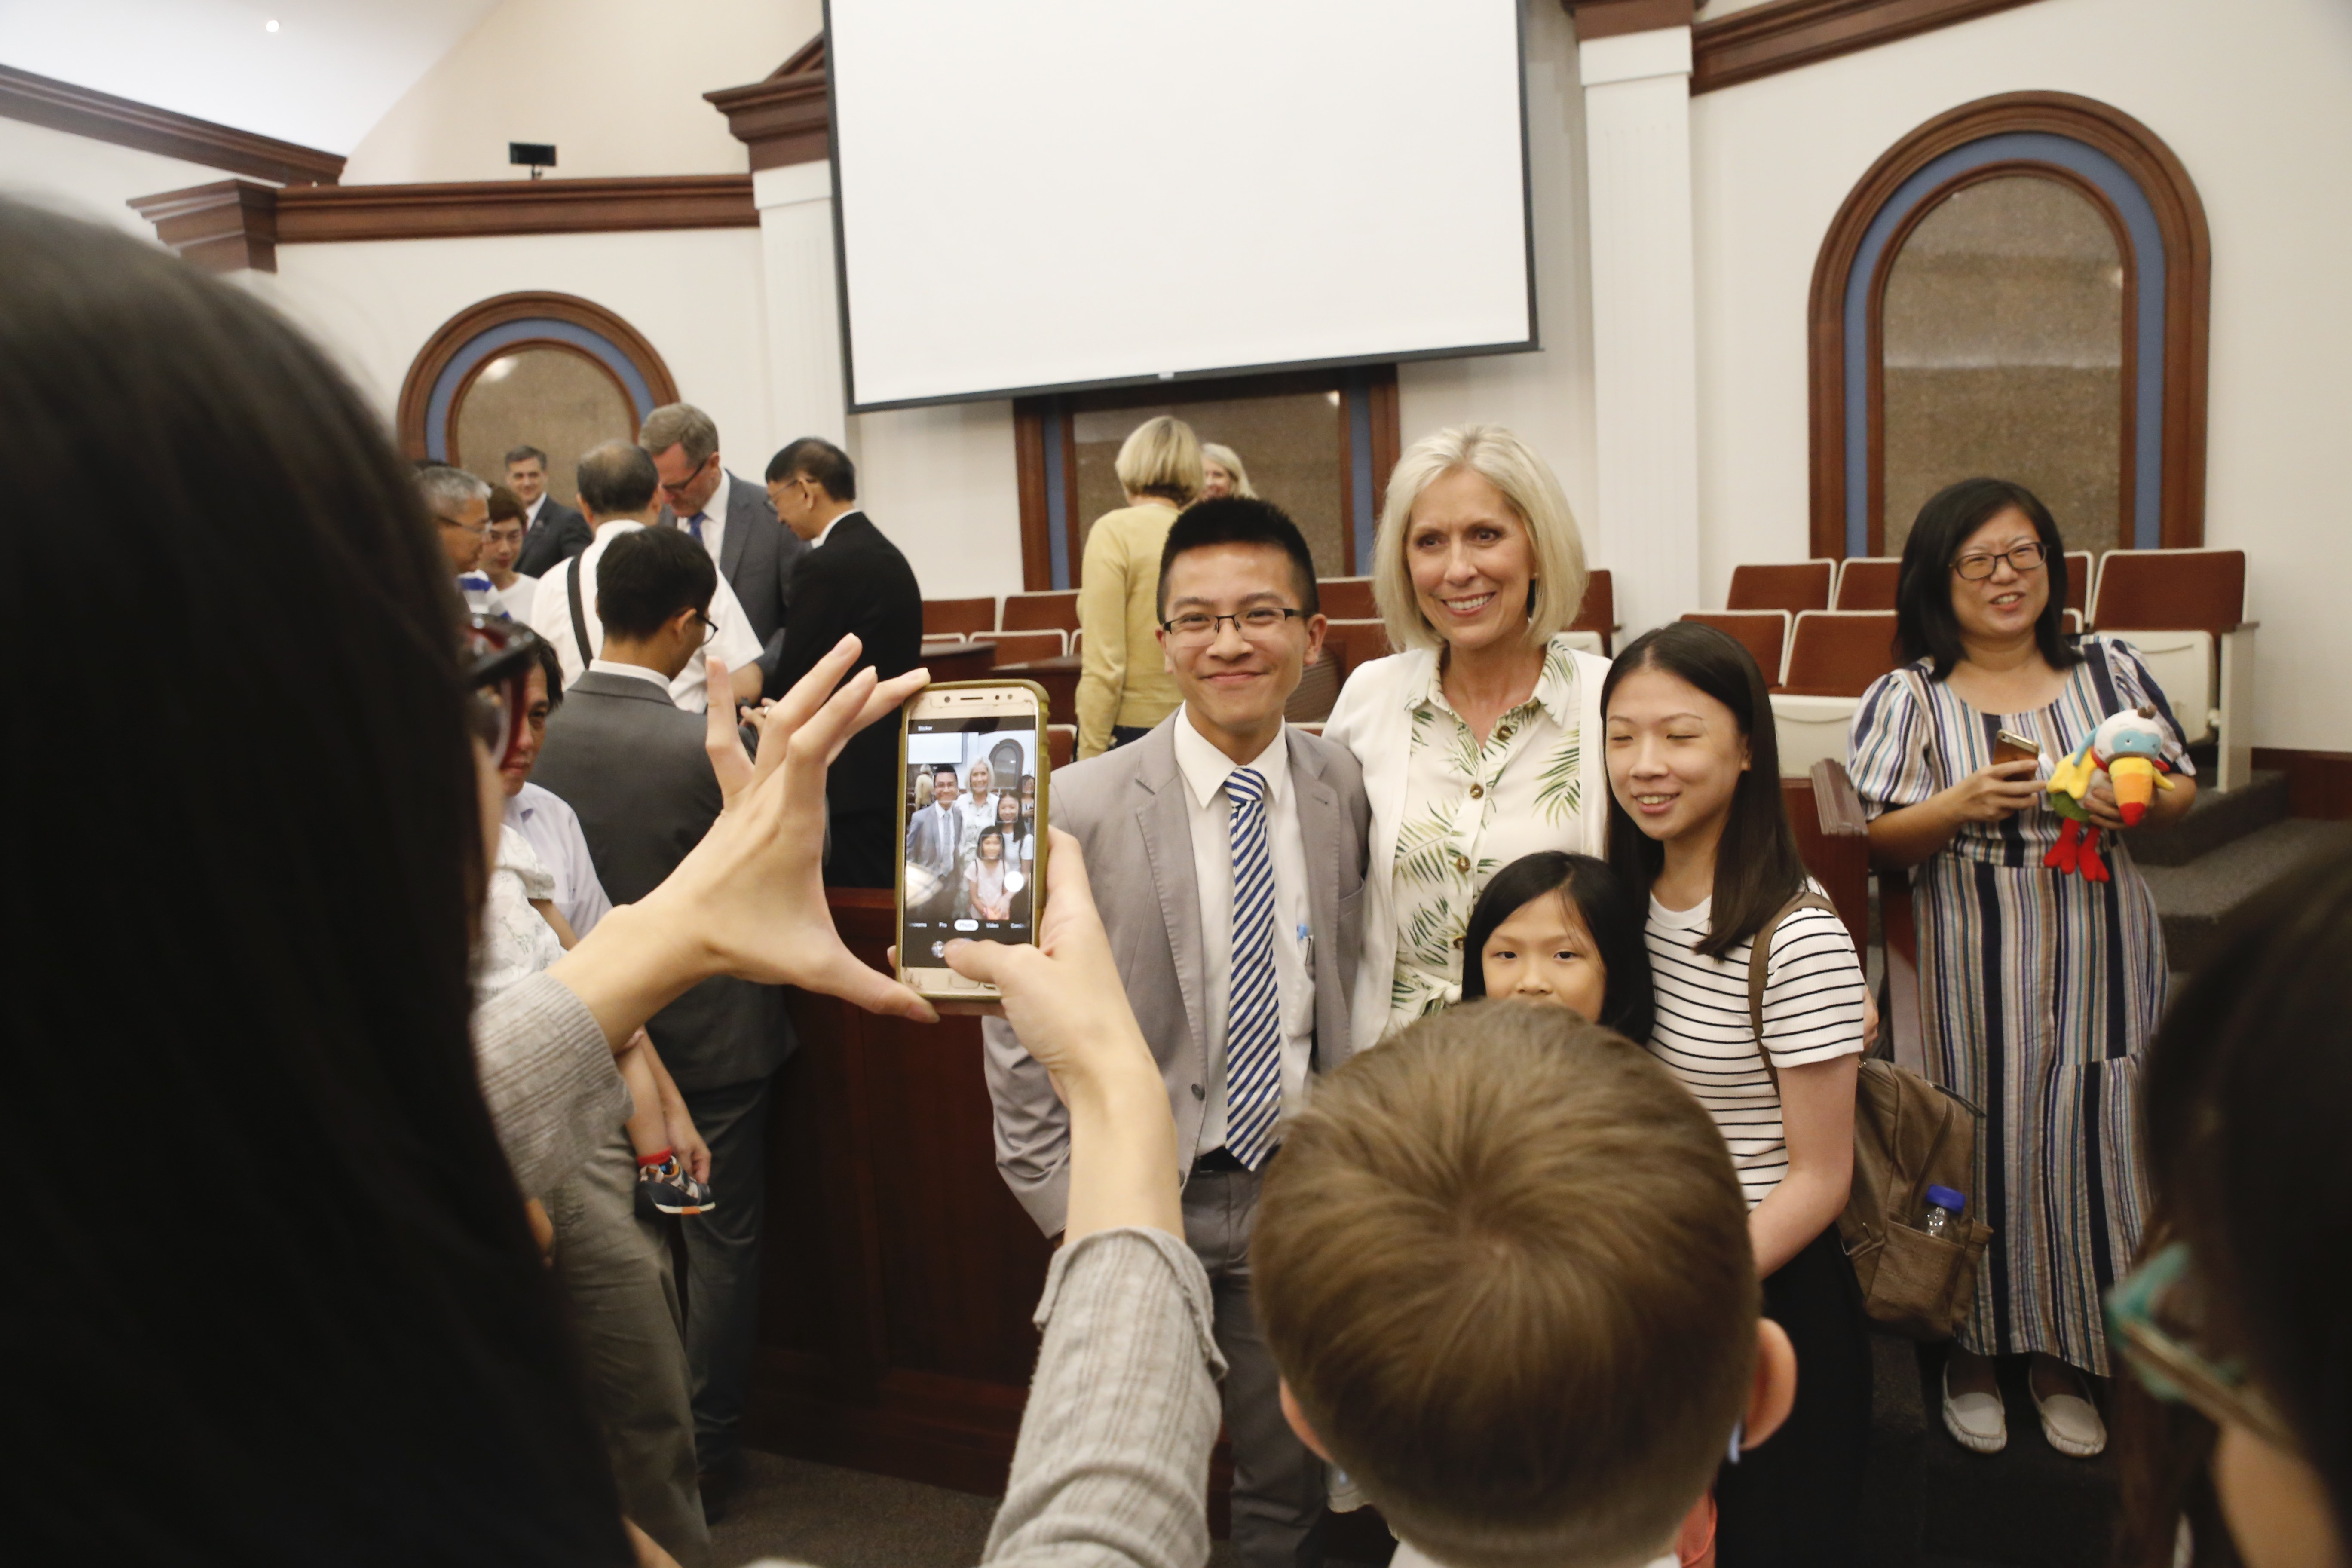 Sister Joy D. Jones, Primary general president, takes photos with members following a devotional in Taipei, Taiwan, during a visit to the Asia Area from Aug. 17 to 14, 2019.